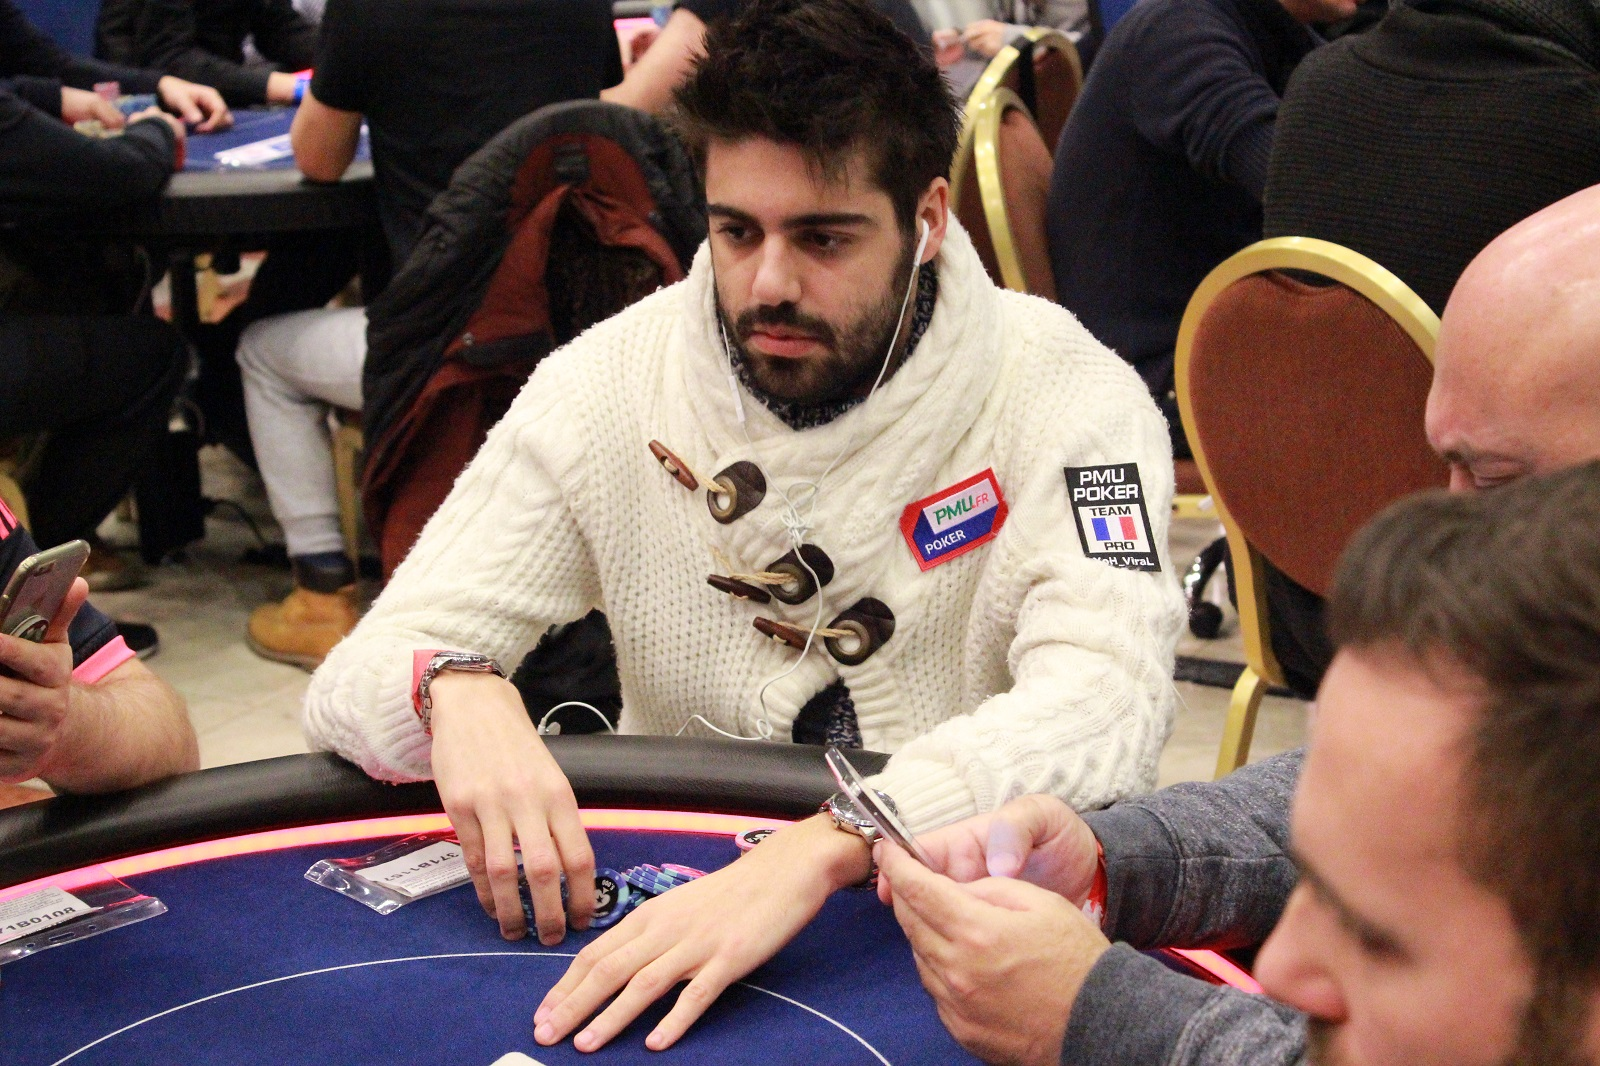 Ept prague yoh remet a blog poker de pmu poker for Chaise yoh viral